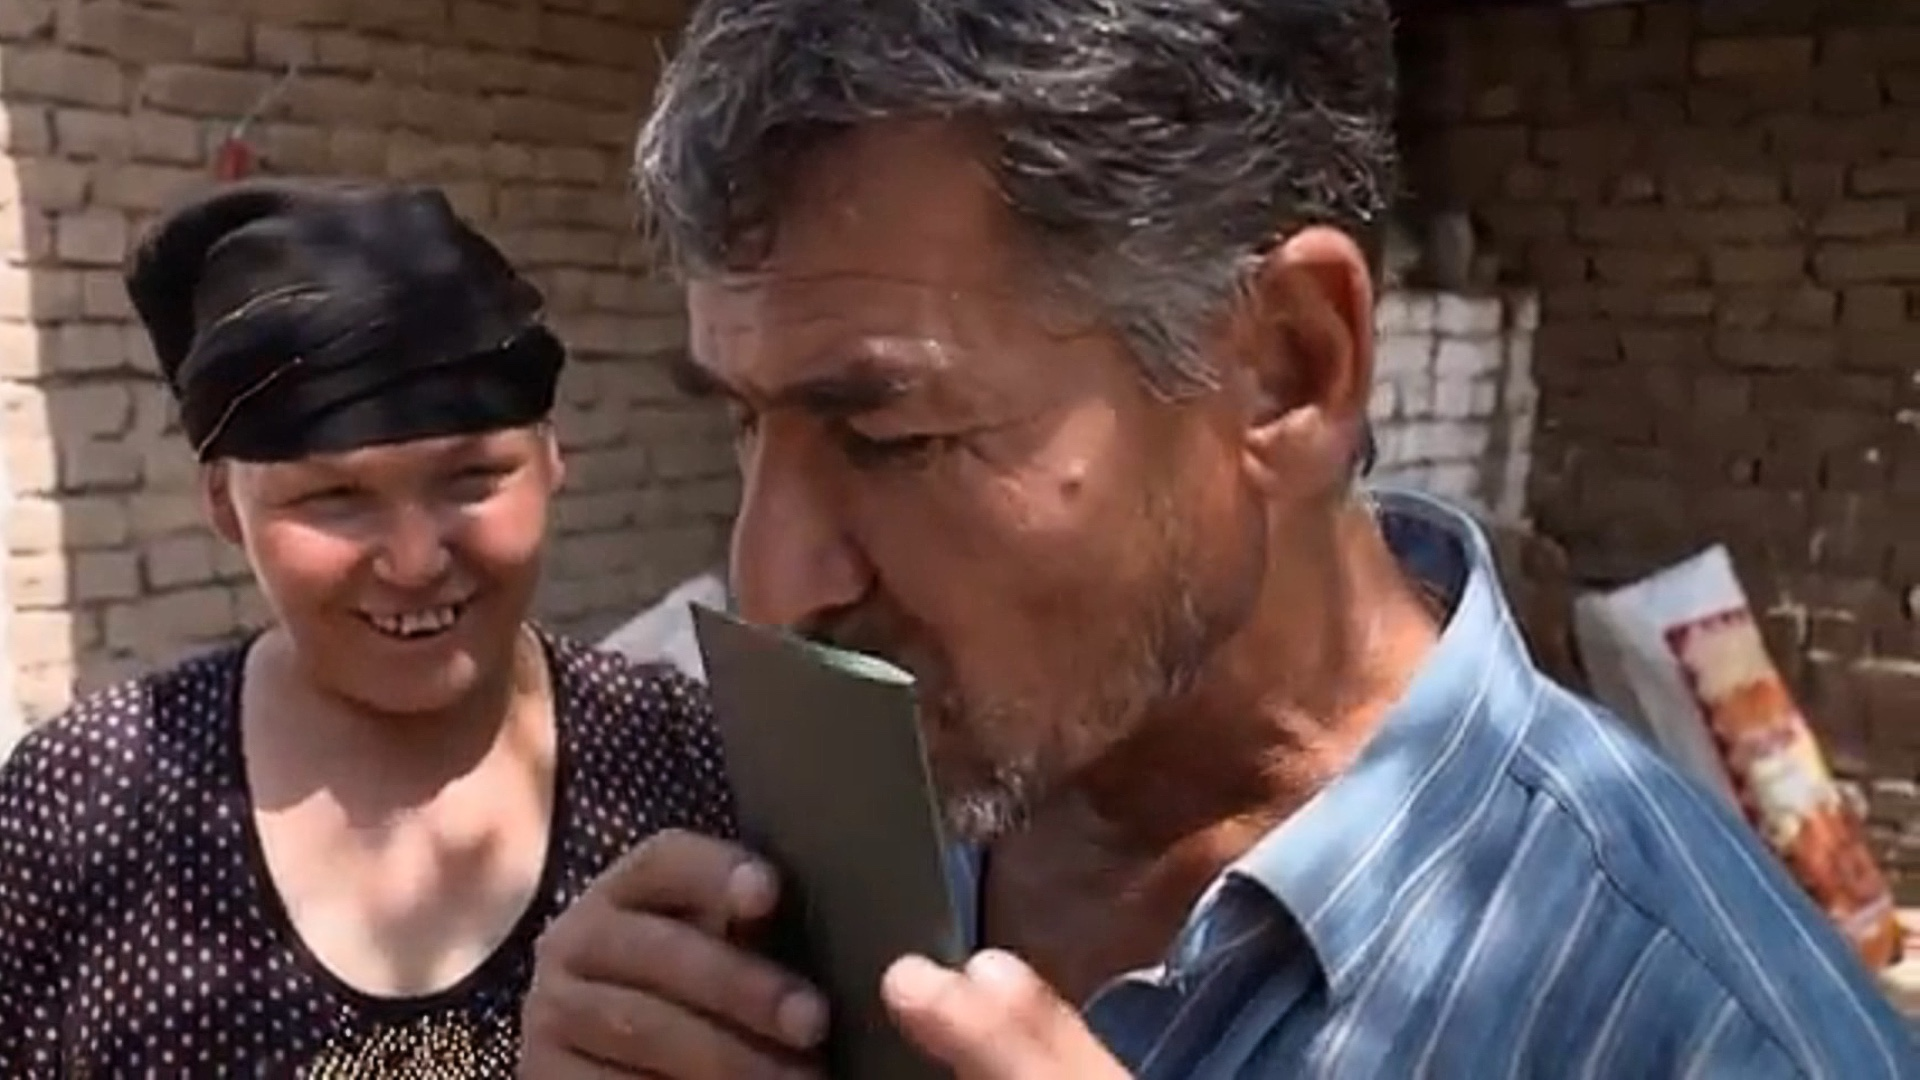 Without a legal trace: Eradicating statelessness in Kyrgyzstan thumbnail